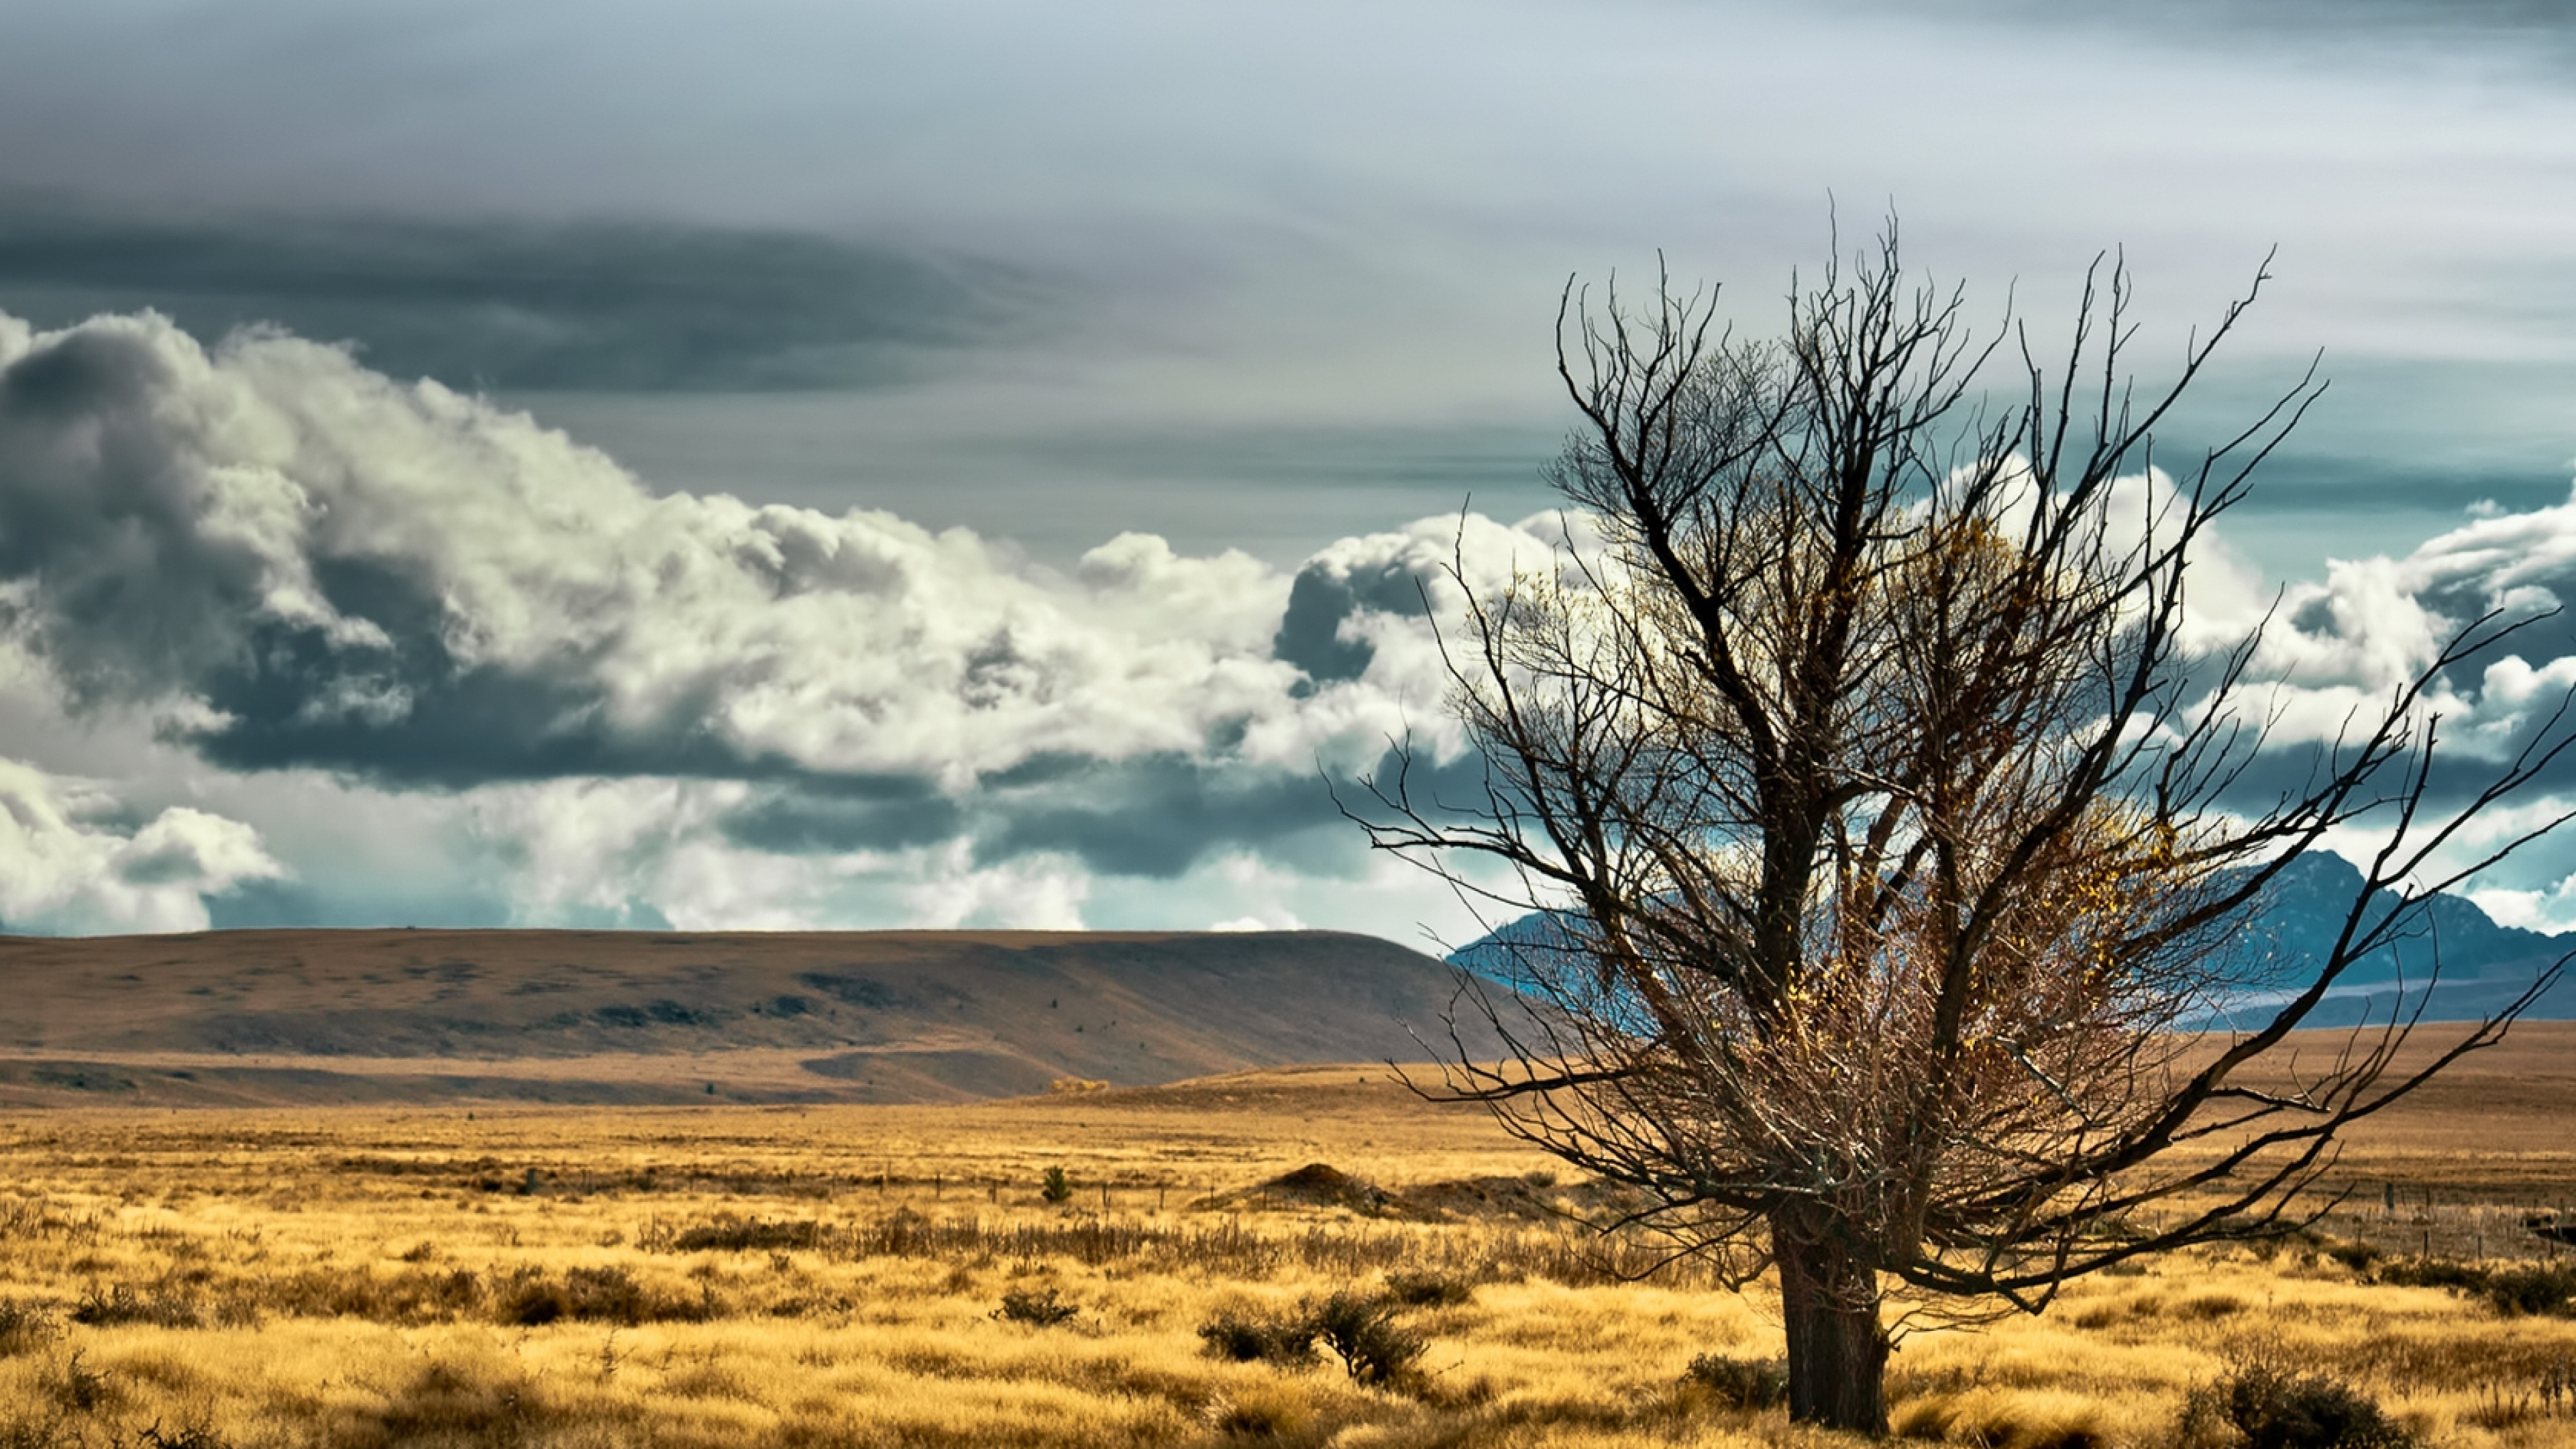 4k Background Wallpapers: 4K Lonely Tree Wallpapers High Quality